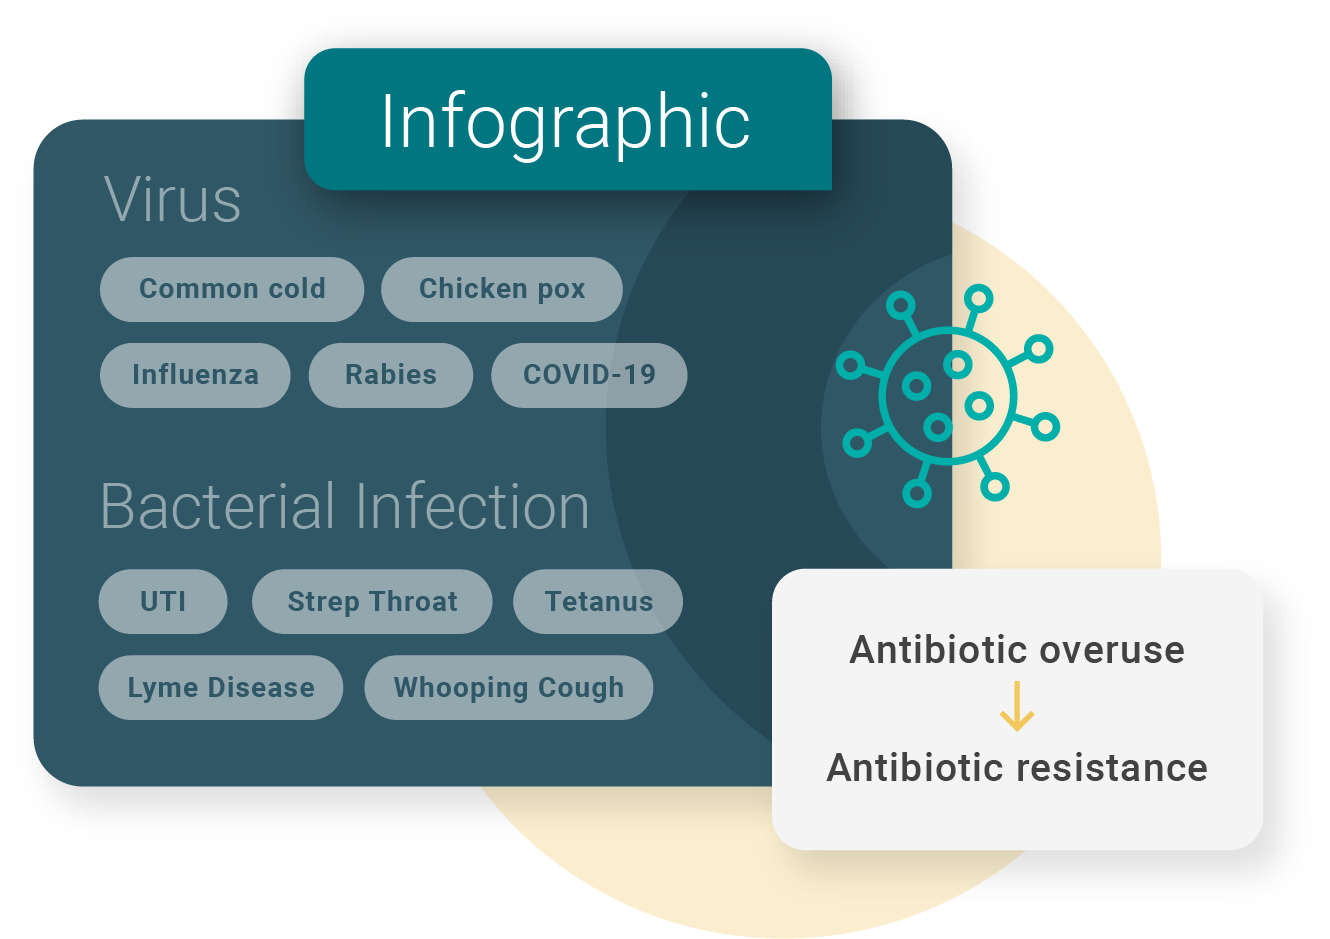 Infographic: Examples of viruses and bacterial infections